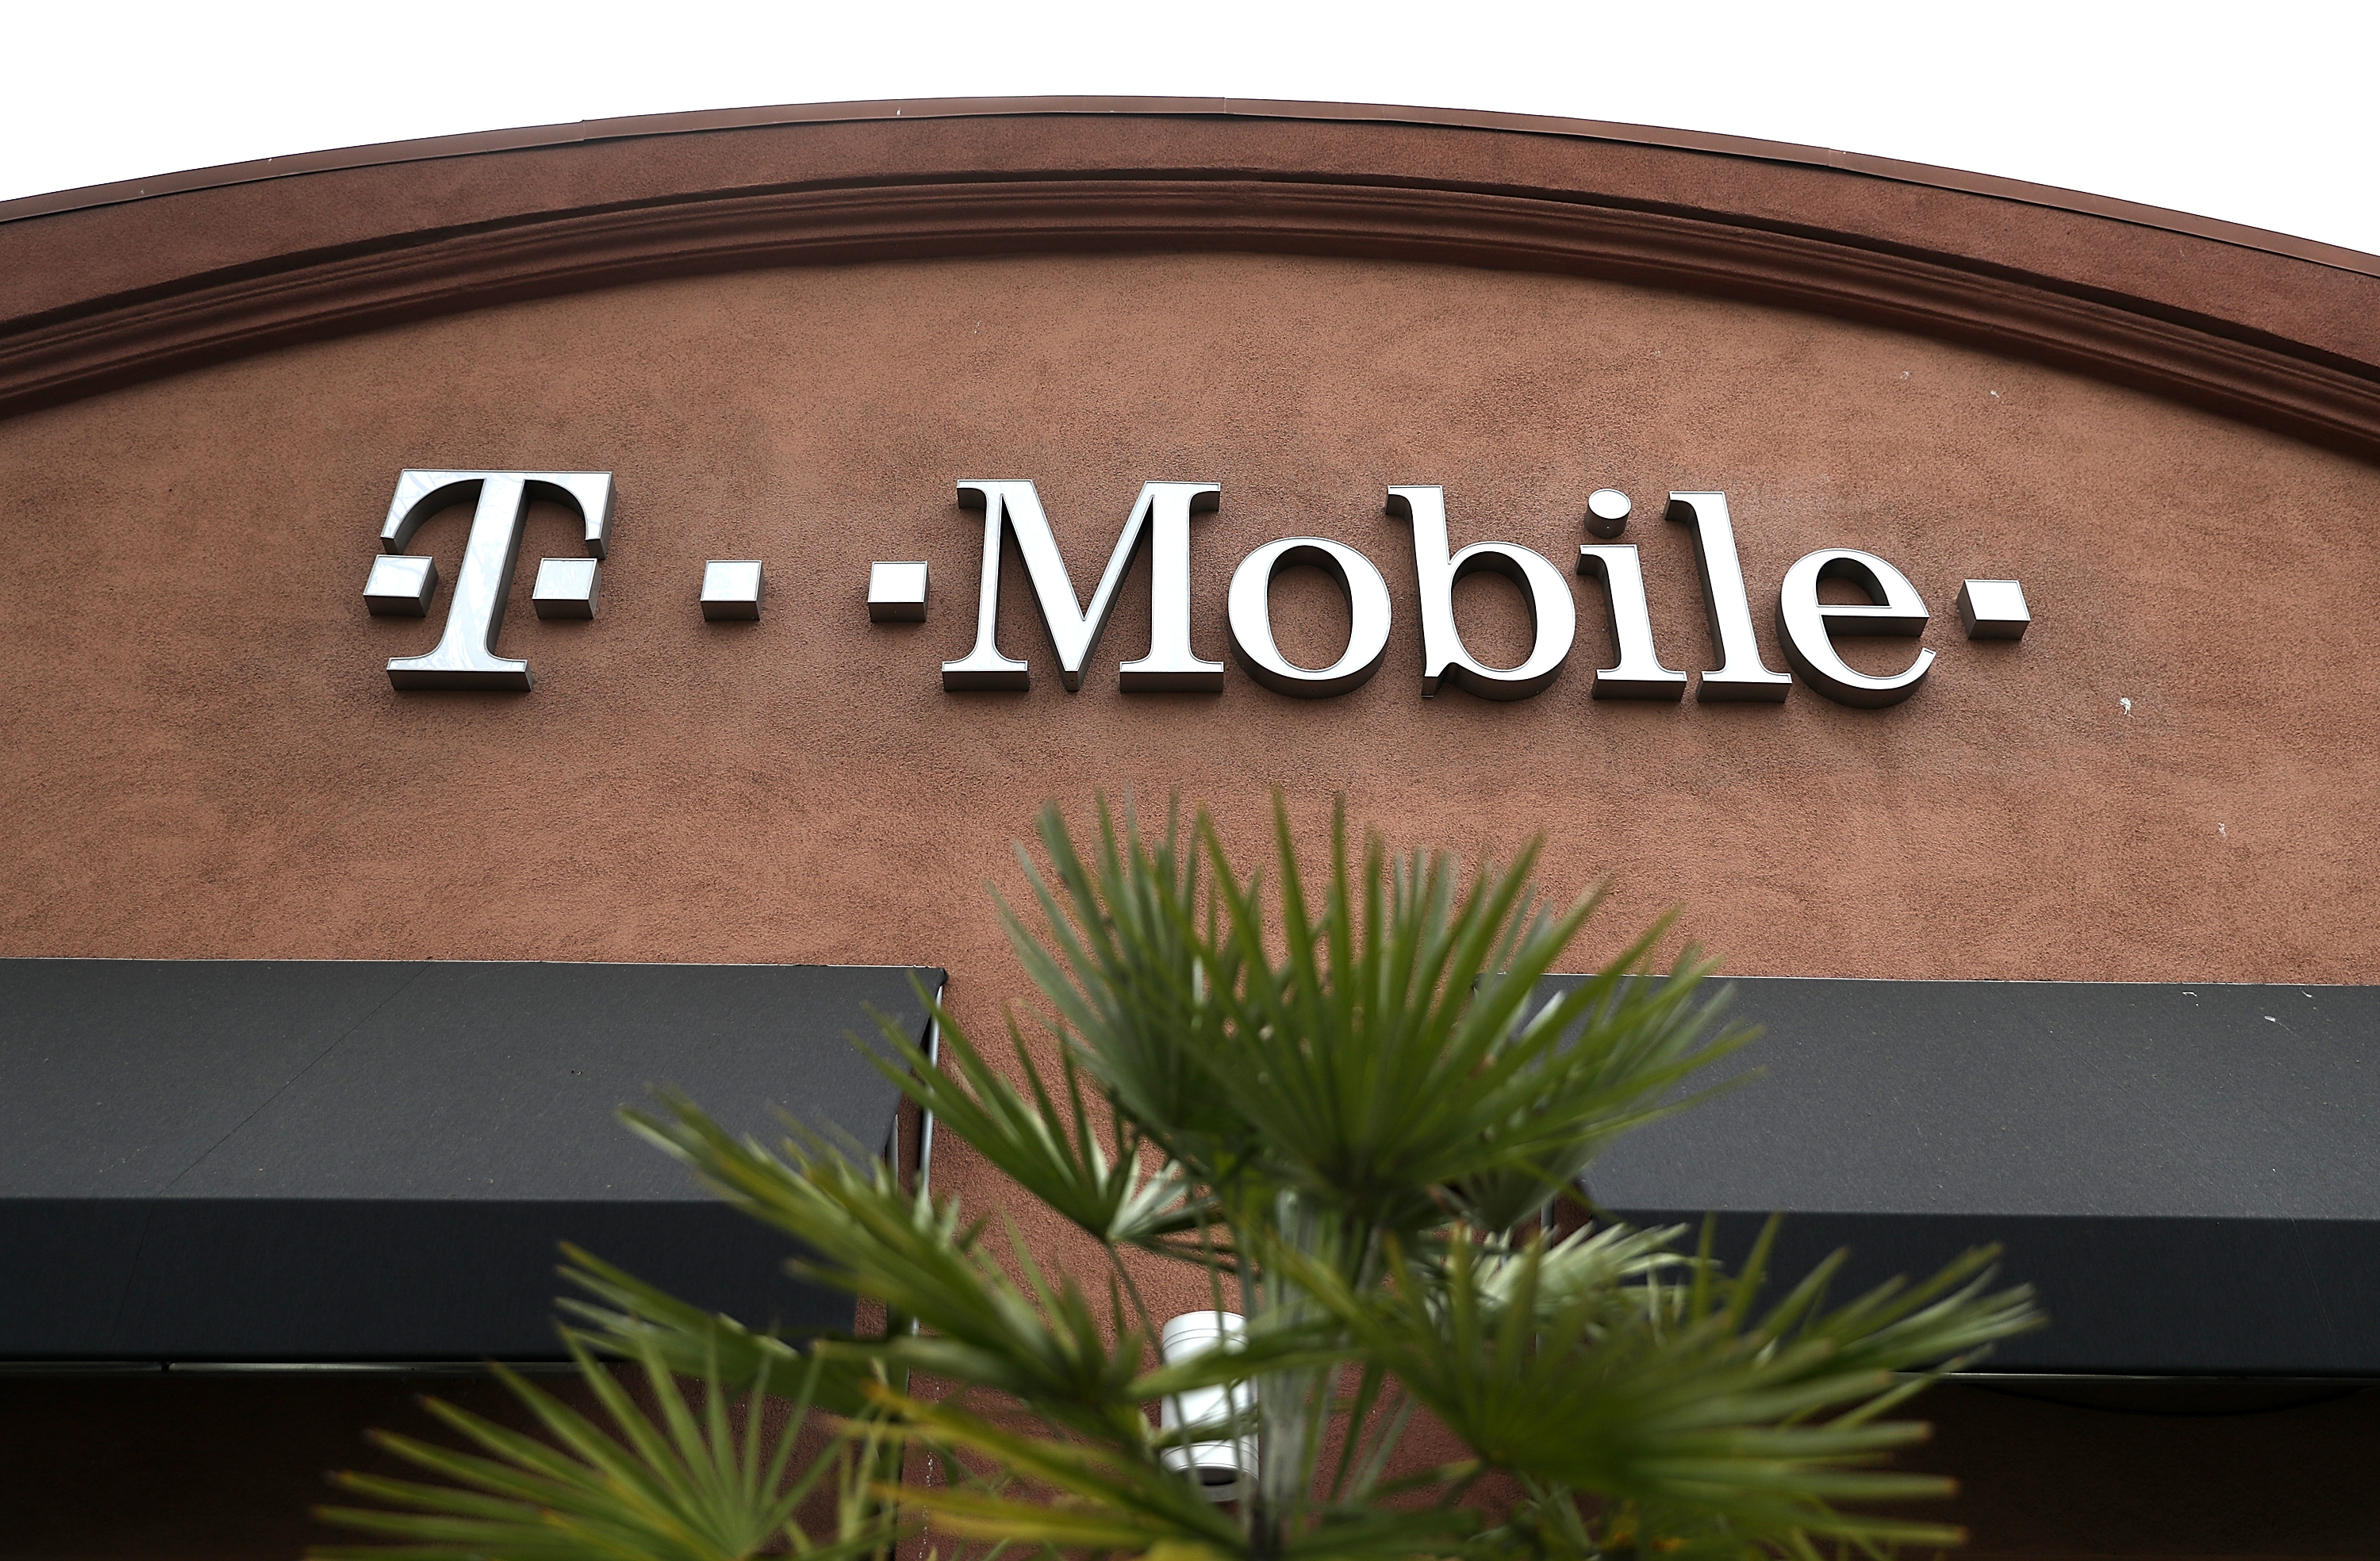 T-Mobile discounts its prepaid unlimited data plan to $50 - The Verge